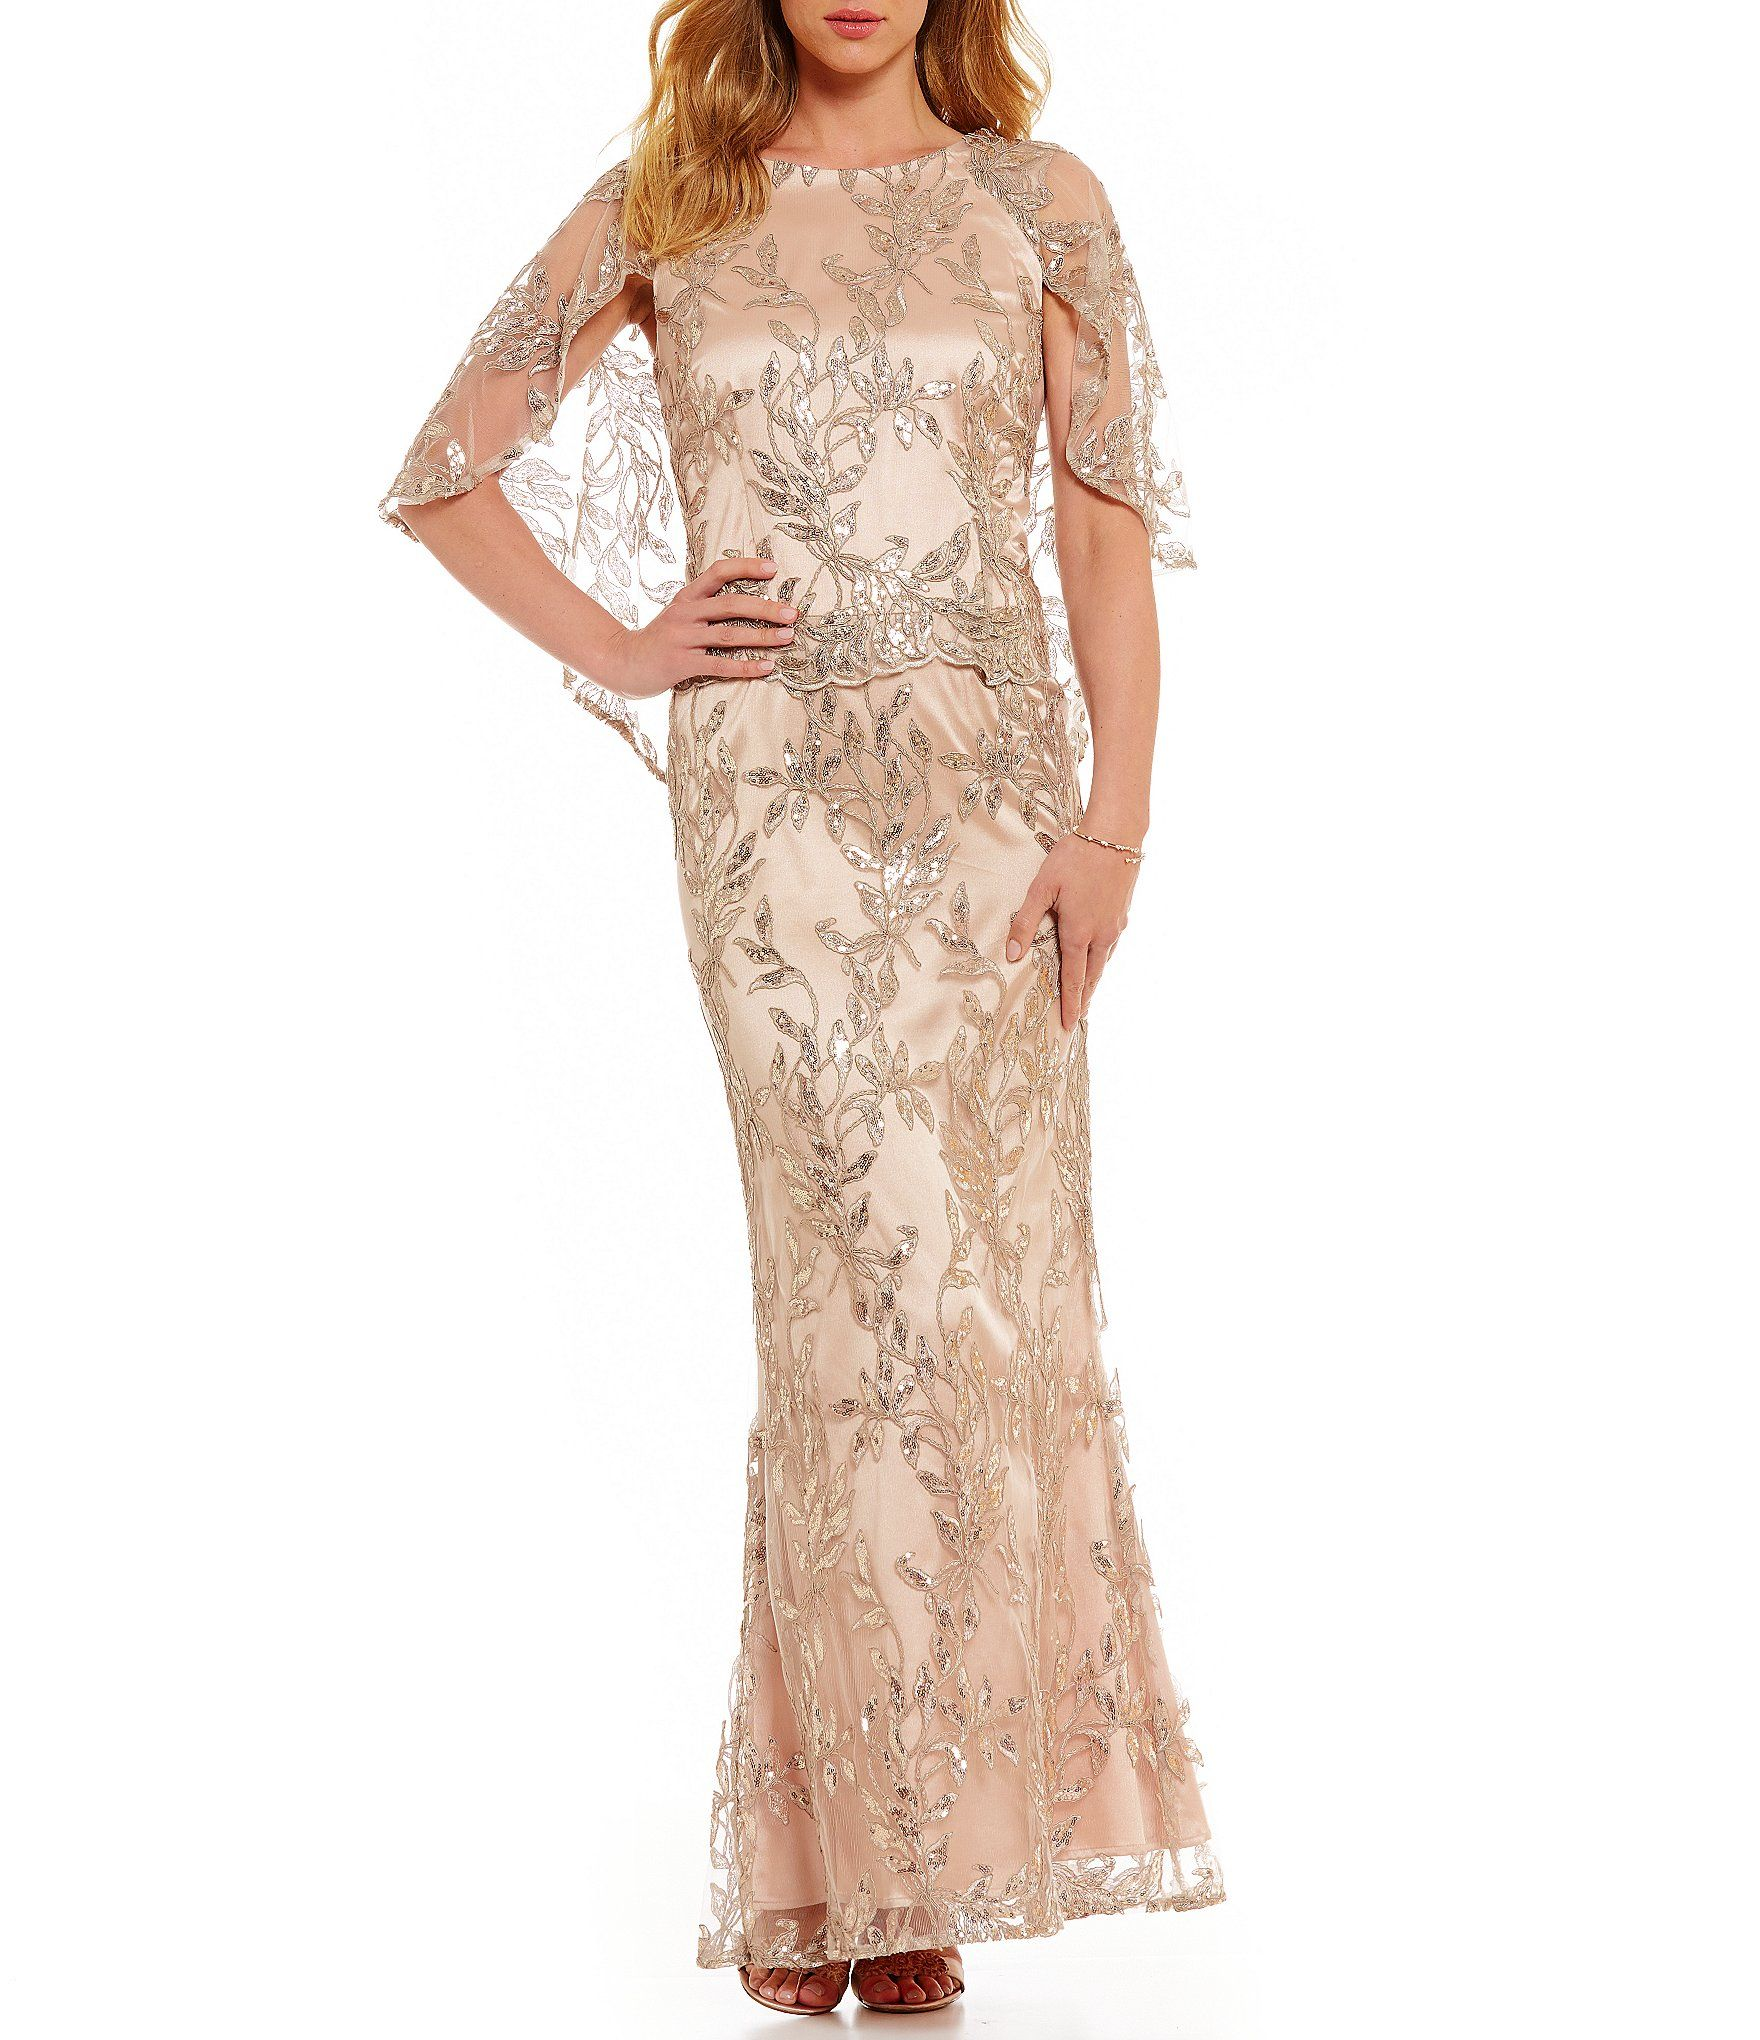 5614bd2e6d Shop for Brianna Embroidered Capelet Mesh Gown at Dillards.com. Visit  Dillards.com to find clothing